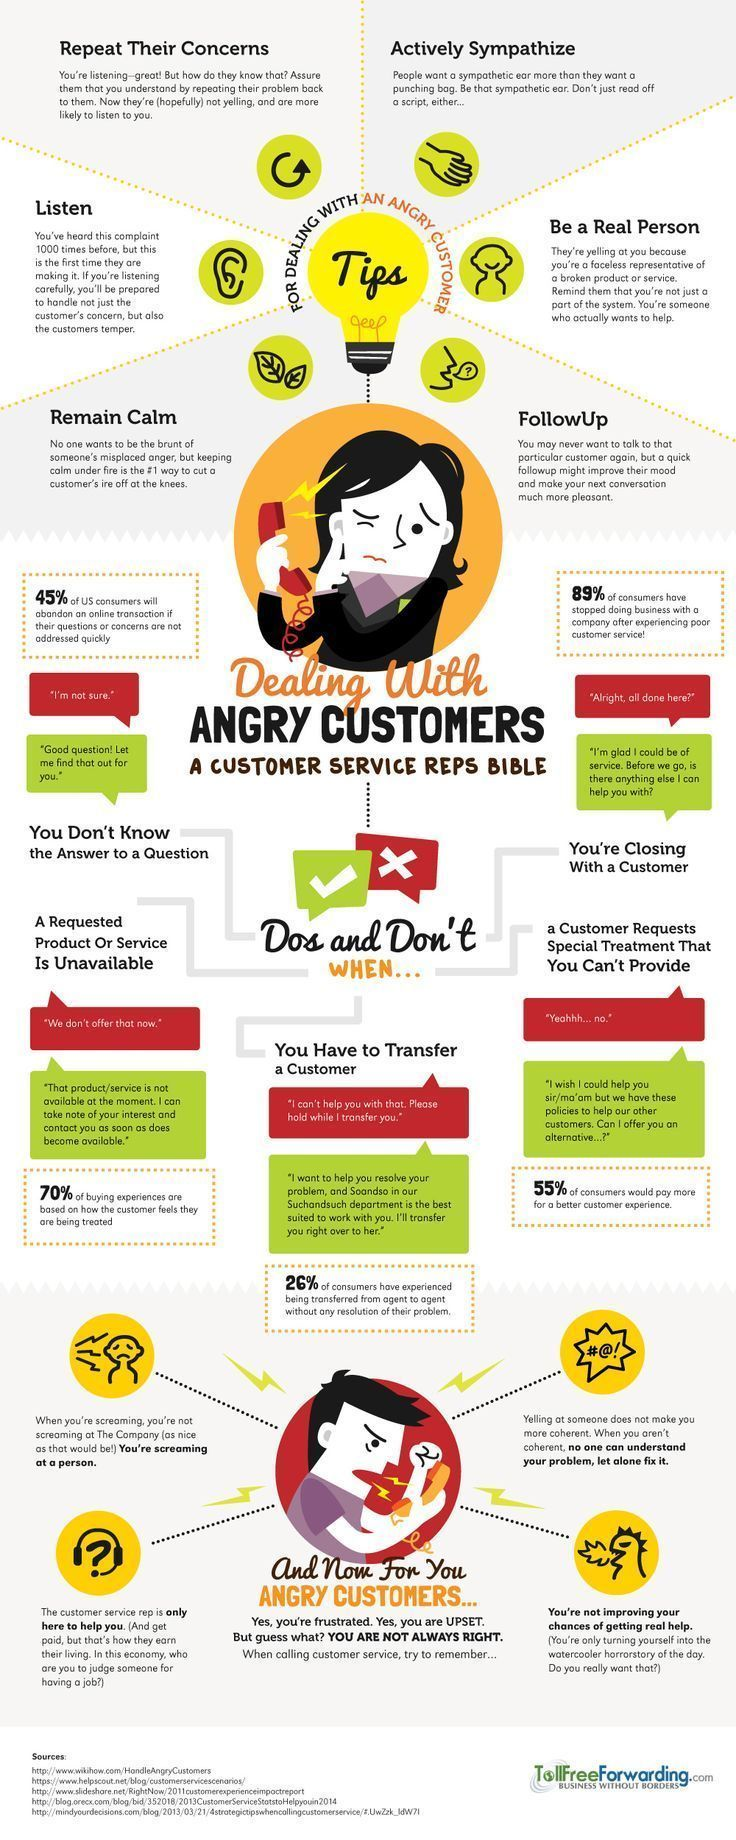 Customer service week Customer service training Angry customer Business etiquette Custo